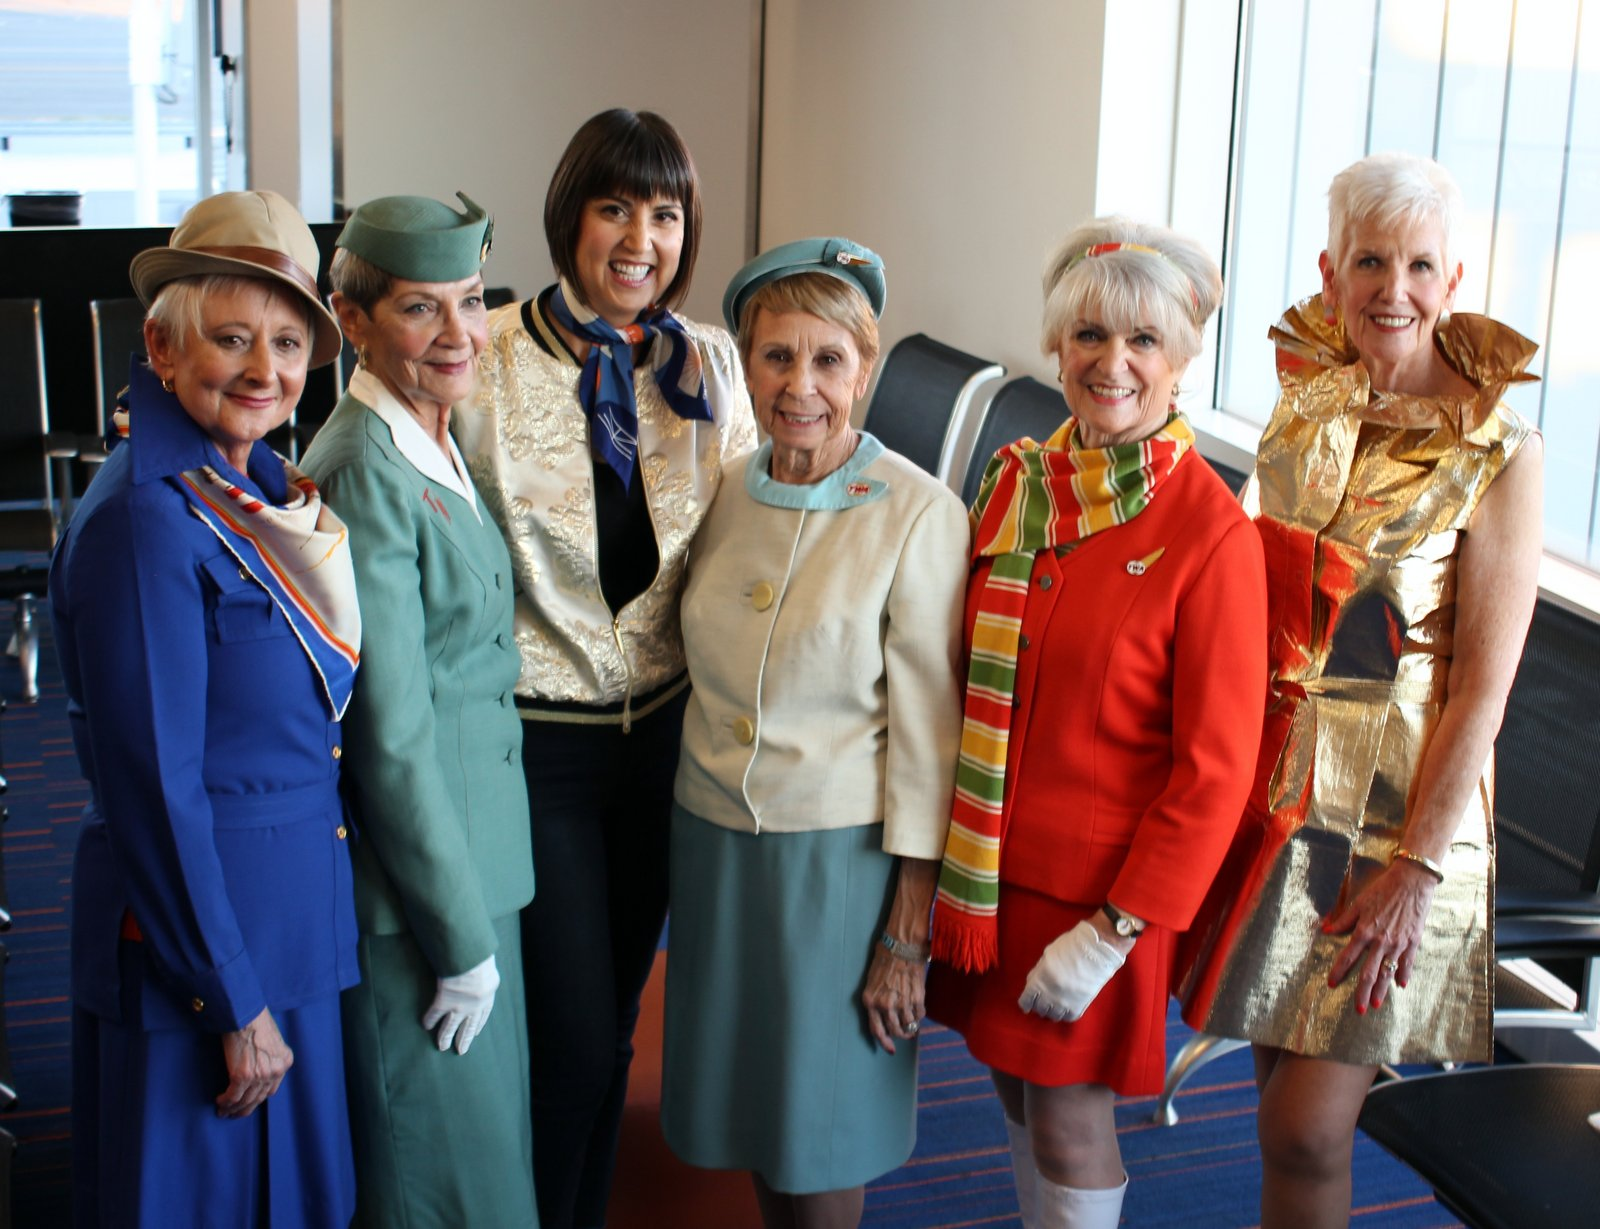 Former TWA flight attendants (and Palm Springs-based designer Trina Turk) after the pre-flight fashion show